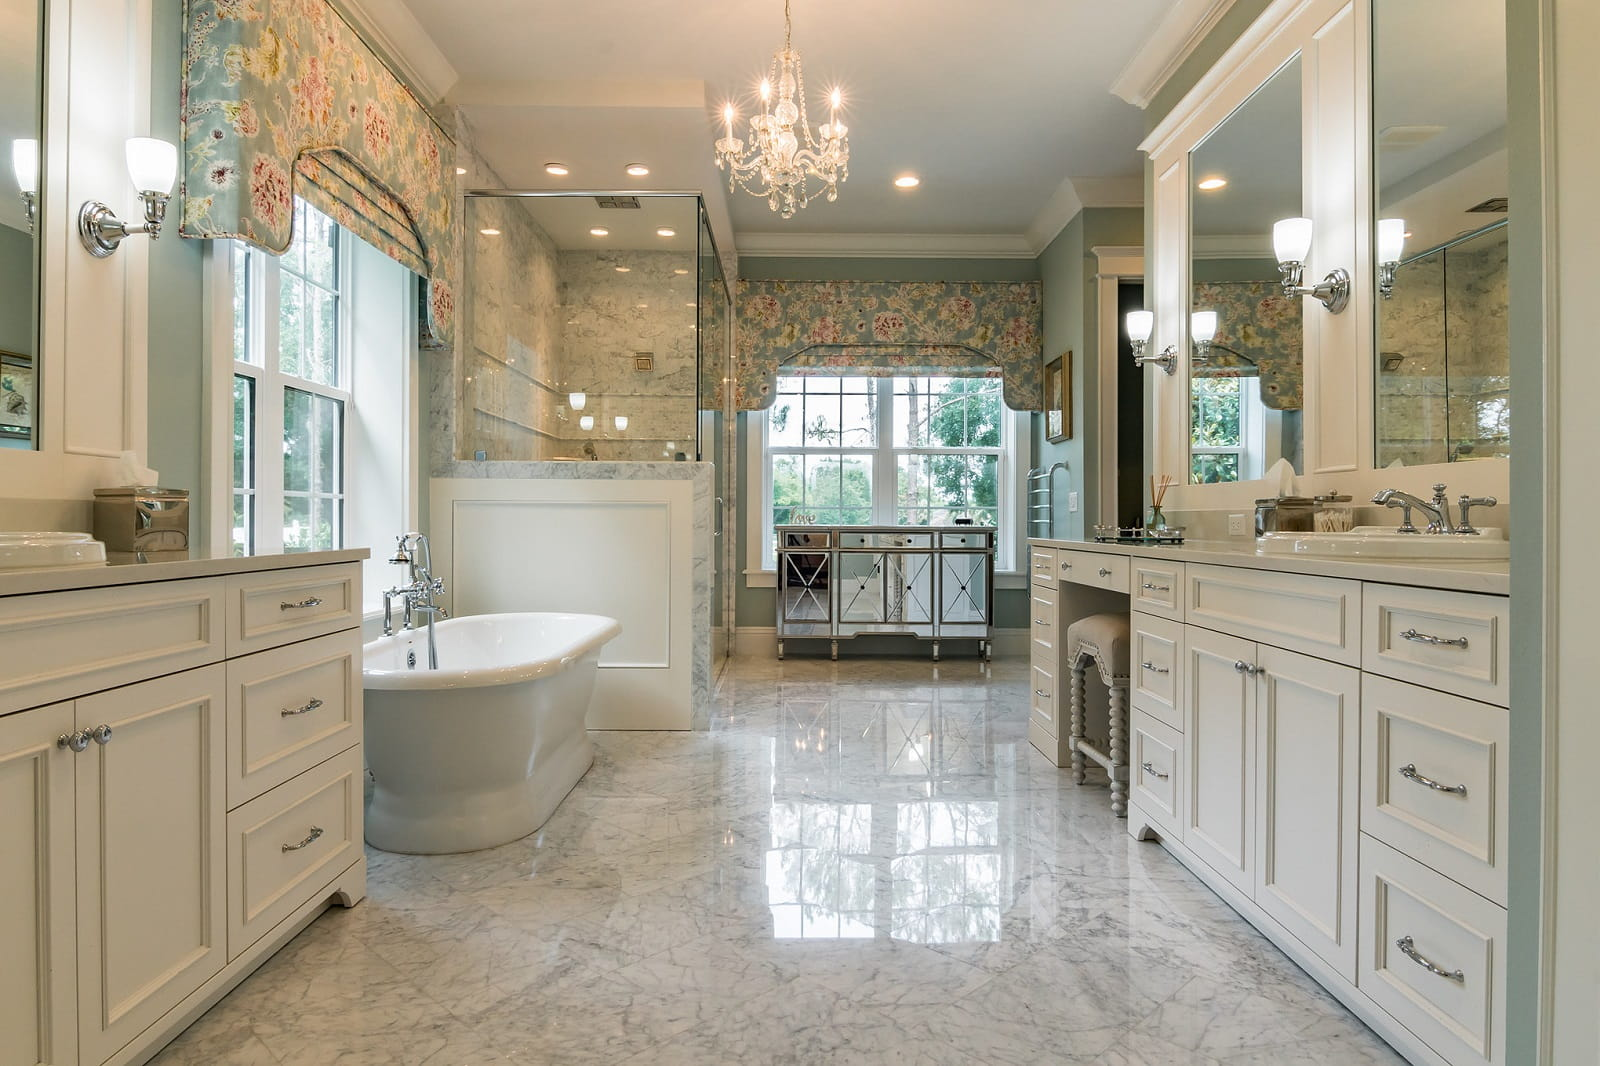 Real Estate Photography in Lakeland - FL - USA - Bathroom View